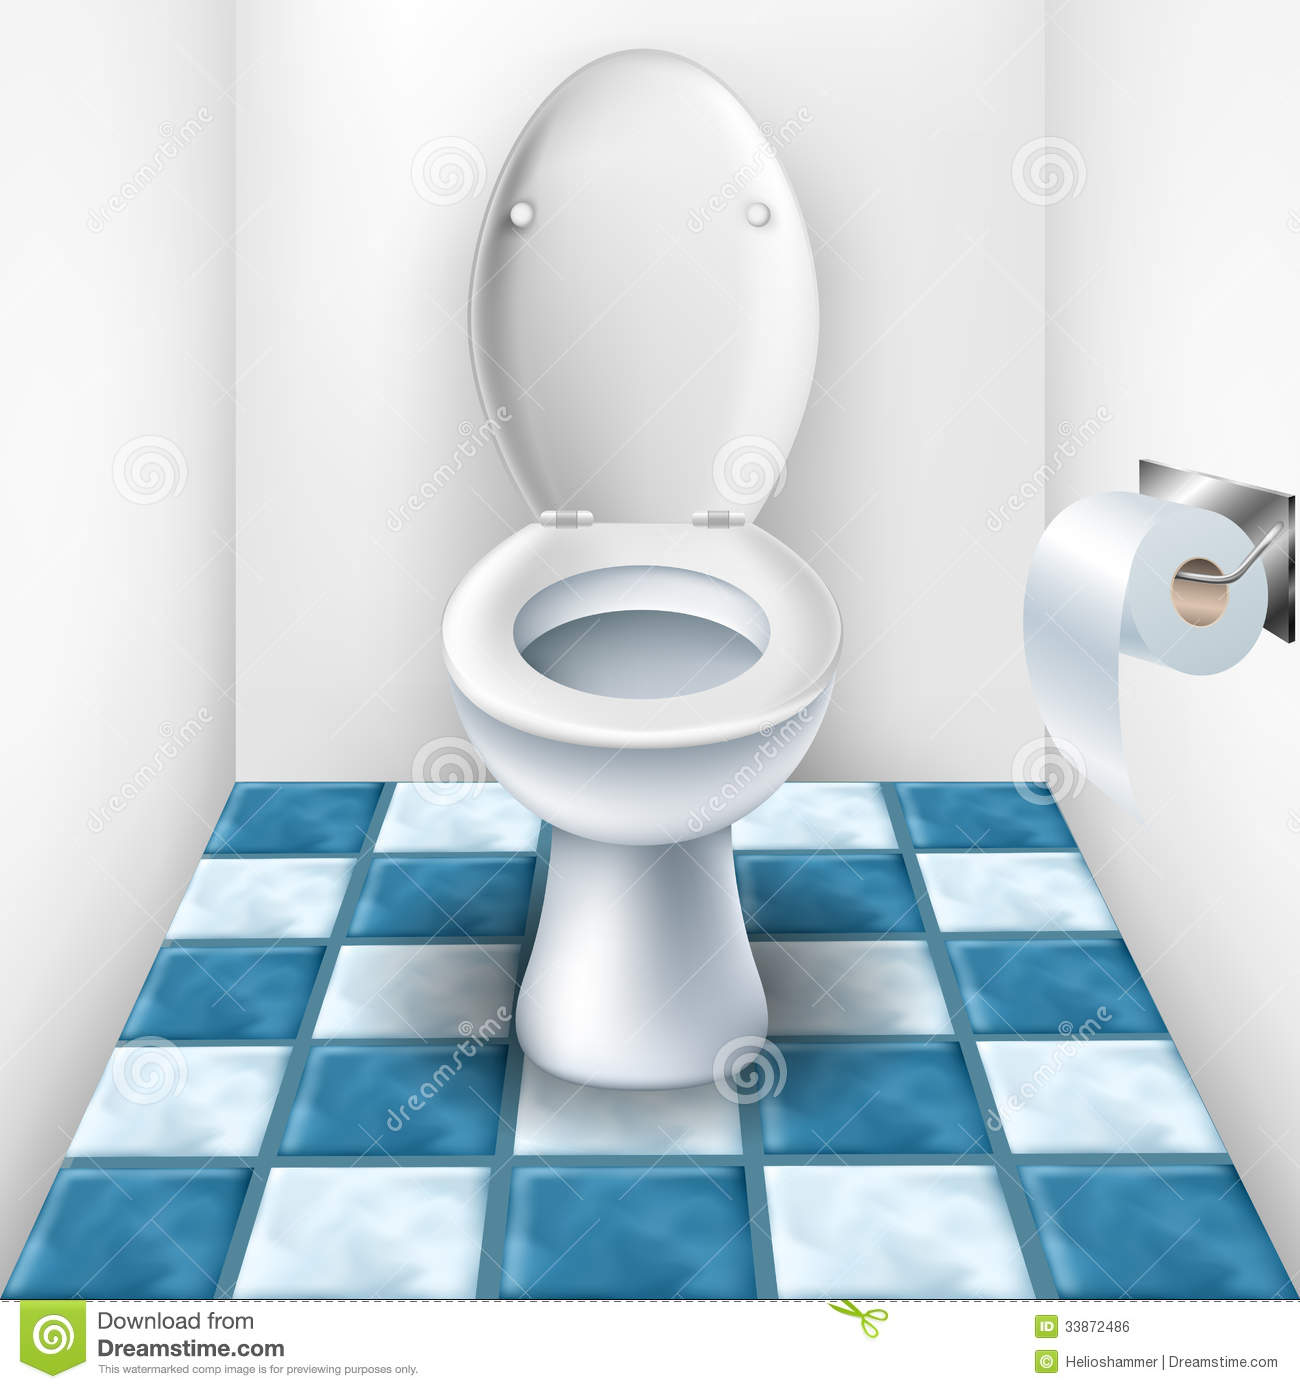 Bathroom With Toilet And Tile Pattern Stock Photo Image